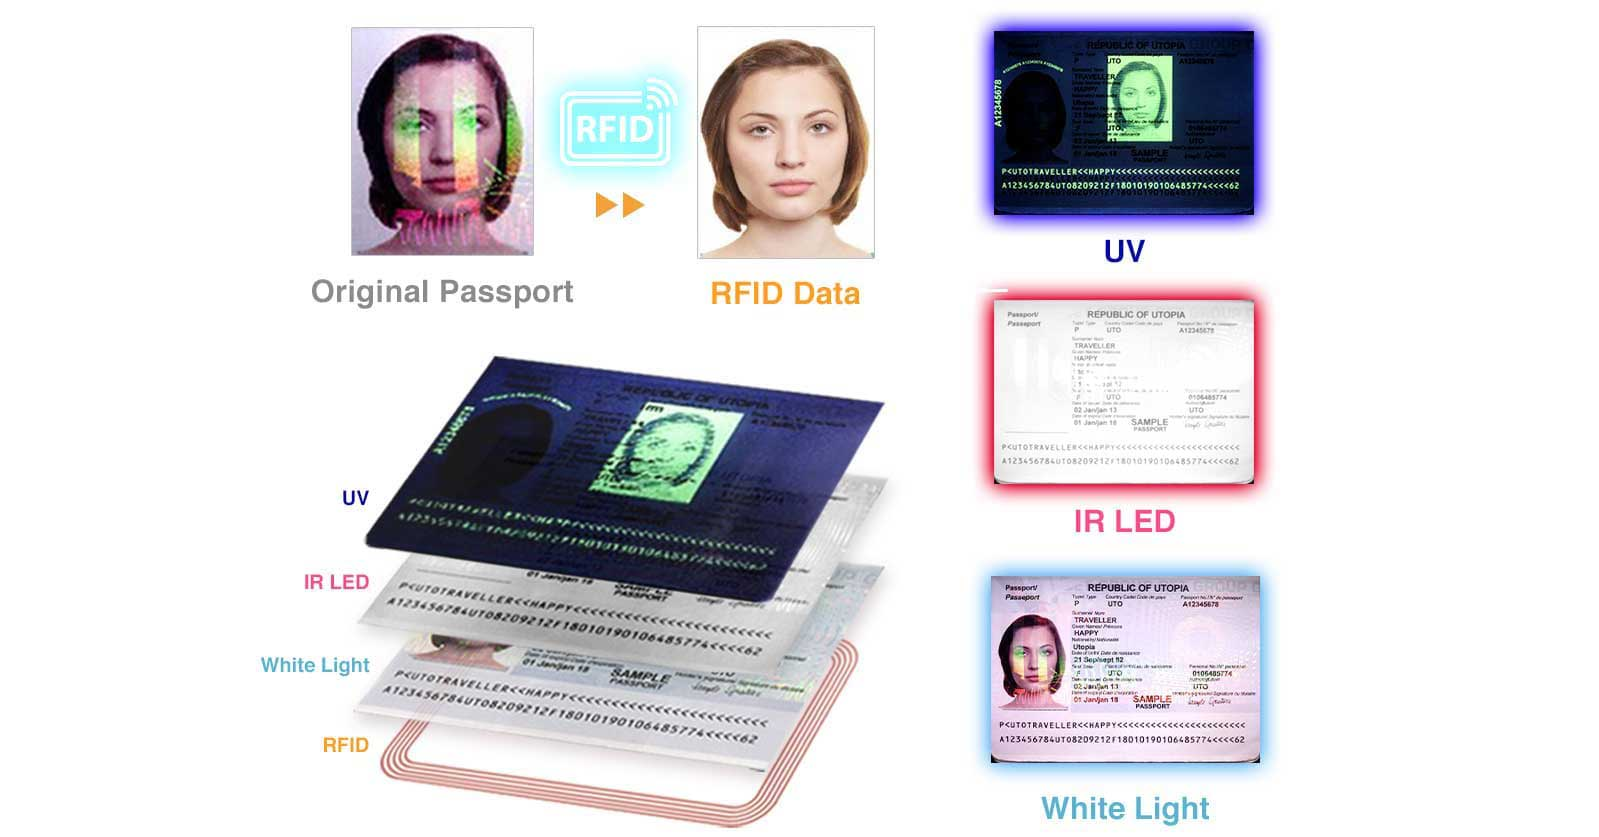 Capable of reading MRZ and visual zone data with 3 light sources.